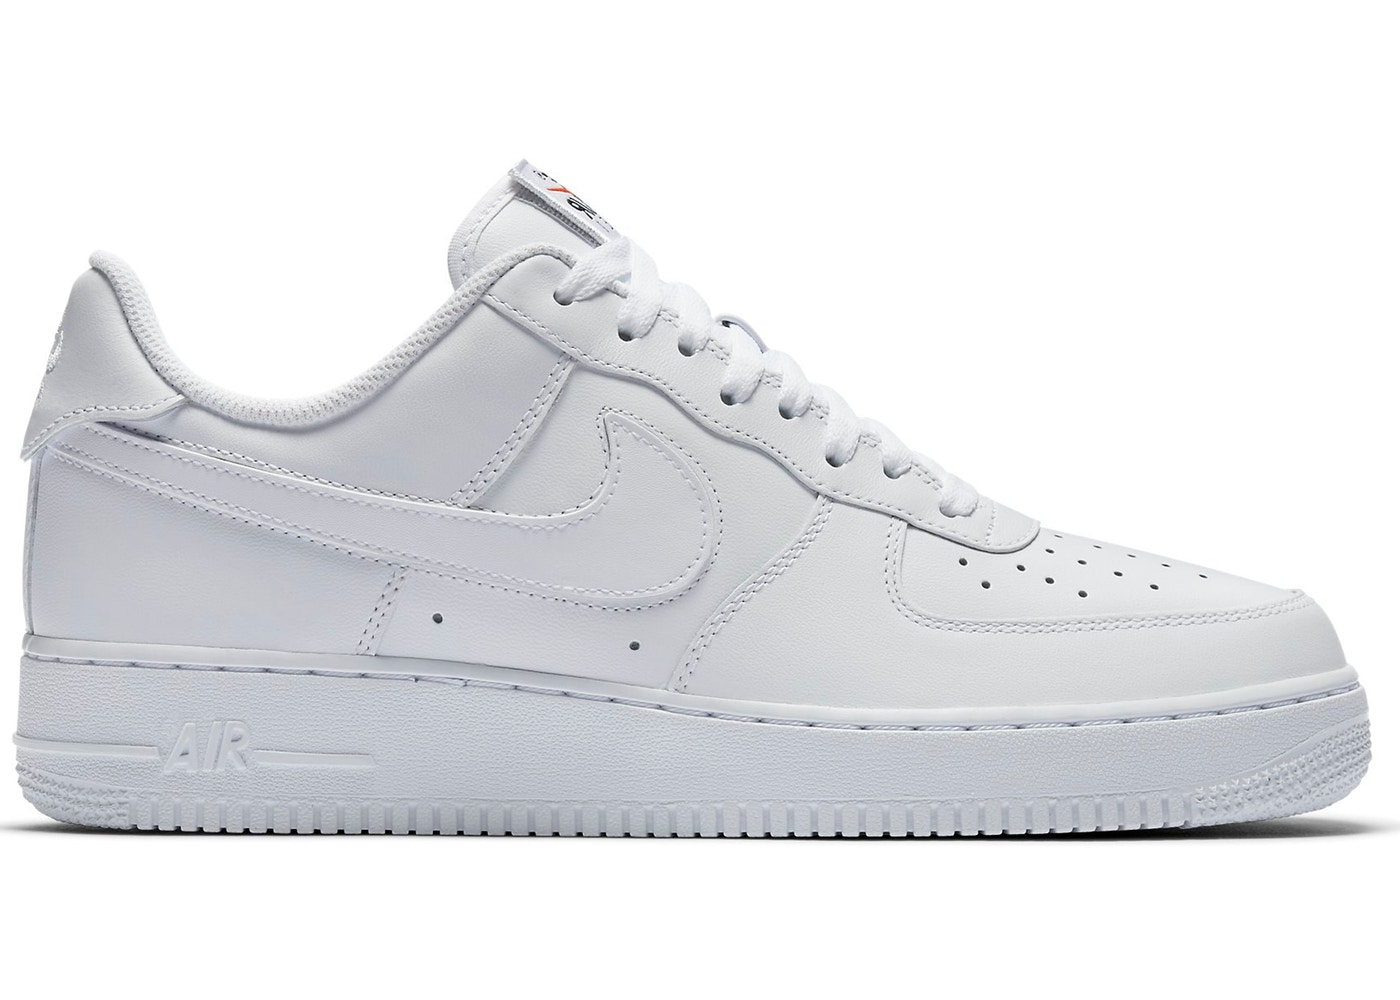 air force 1 low swoosh pack all star 2018 white ah8462 102. Black Bedroom Furniture Sets. Home Design Ideas